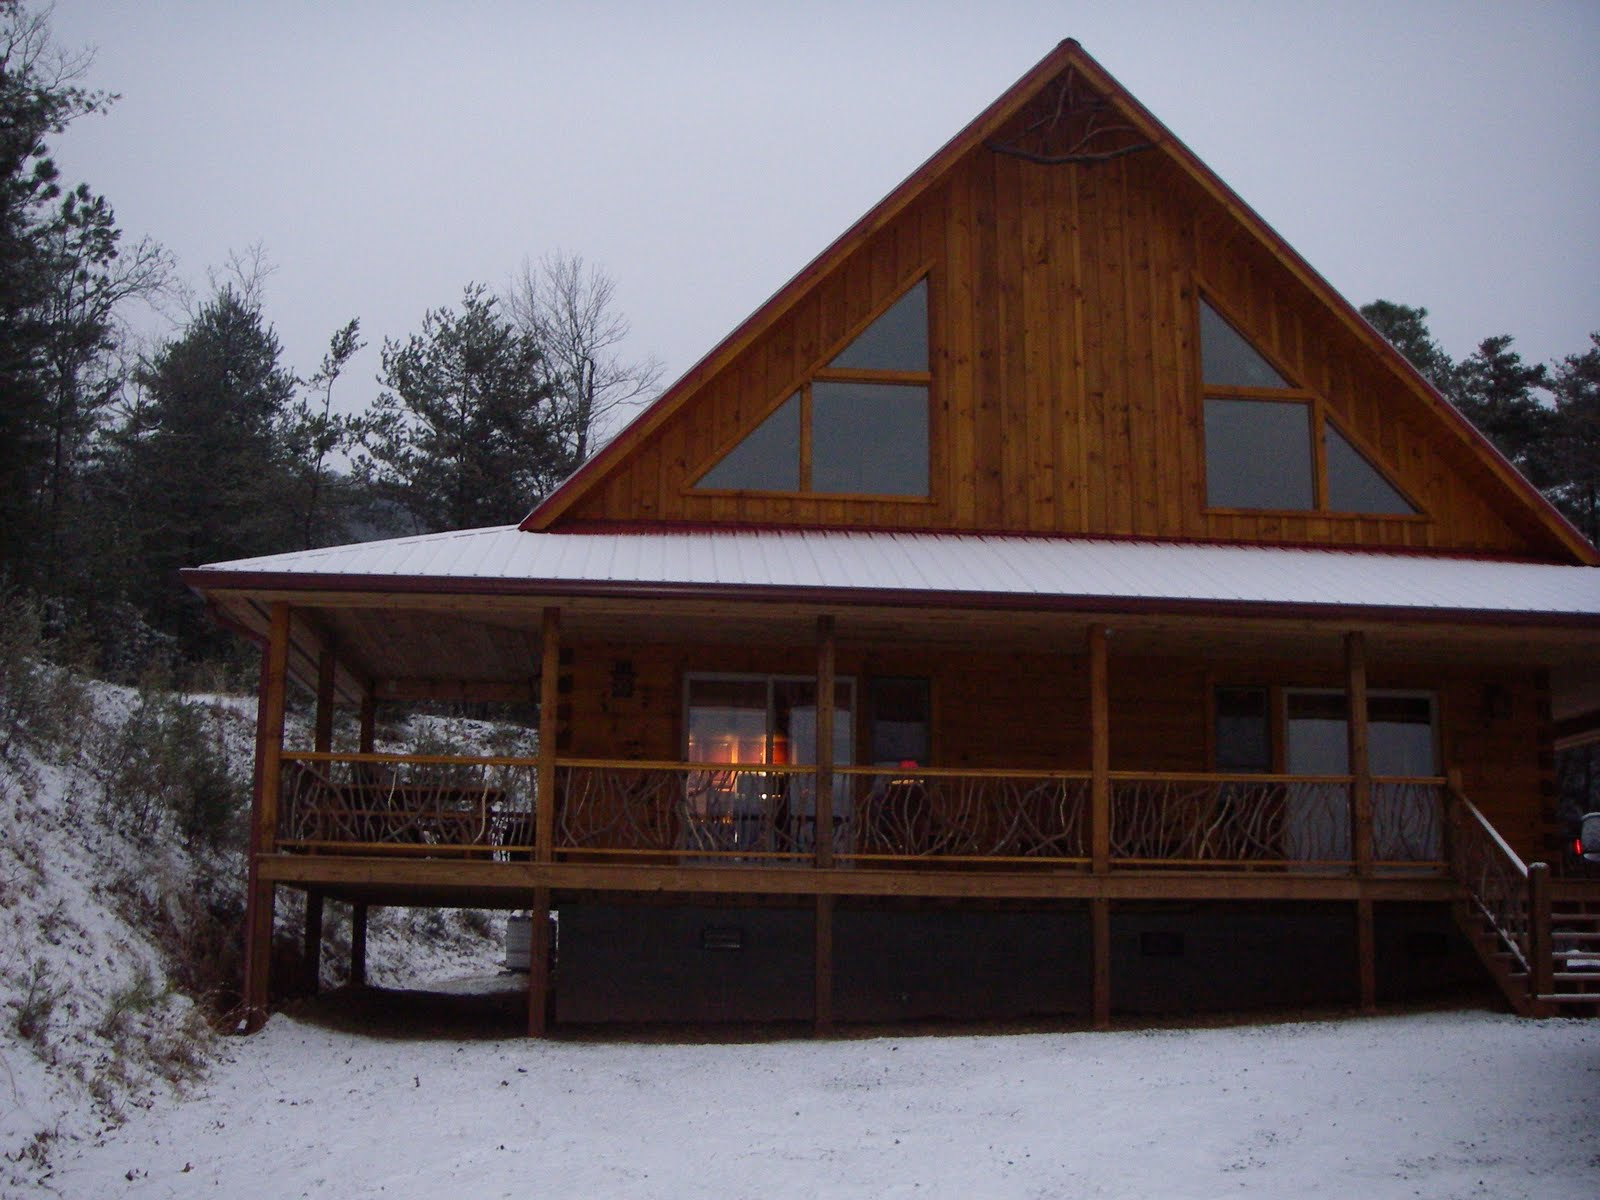 with sale img gallery home key for nc mountain log cabins cabin in land packages turn asheville